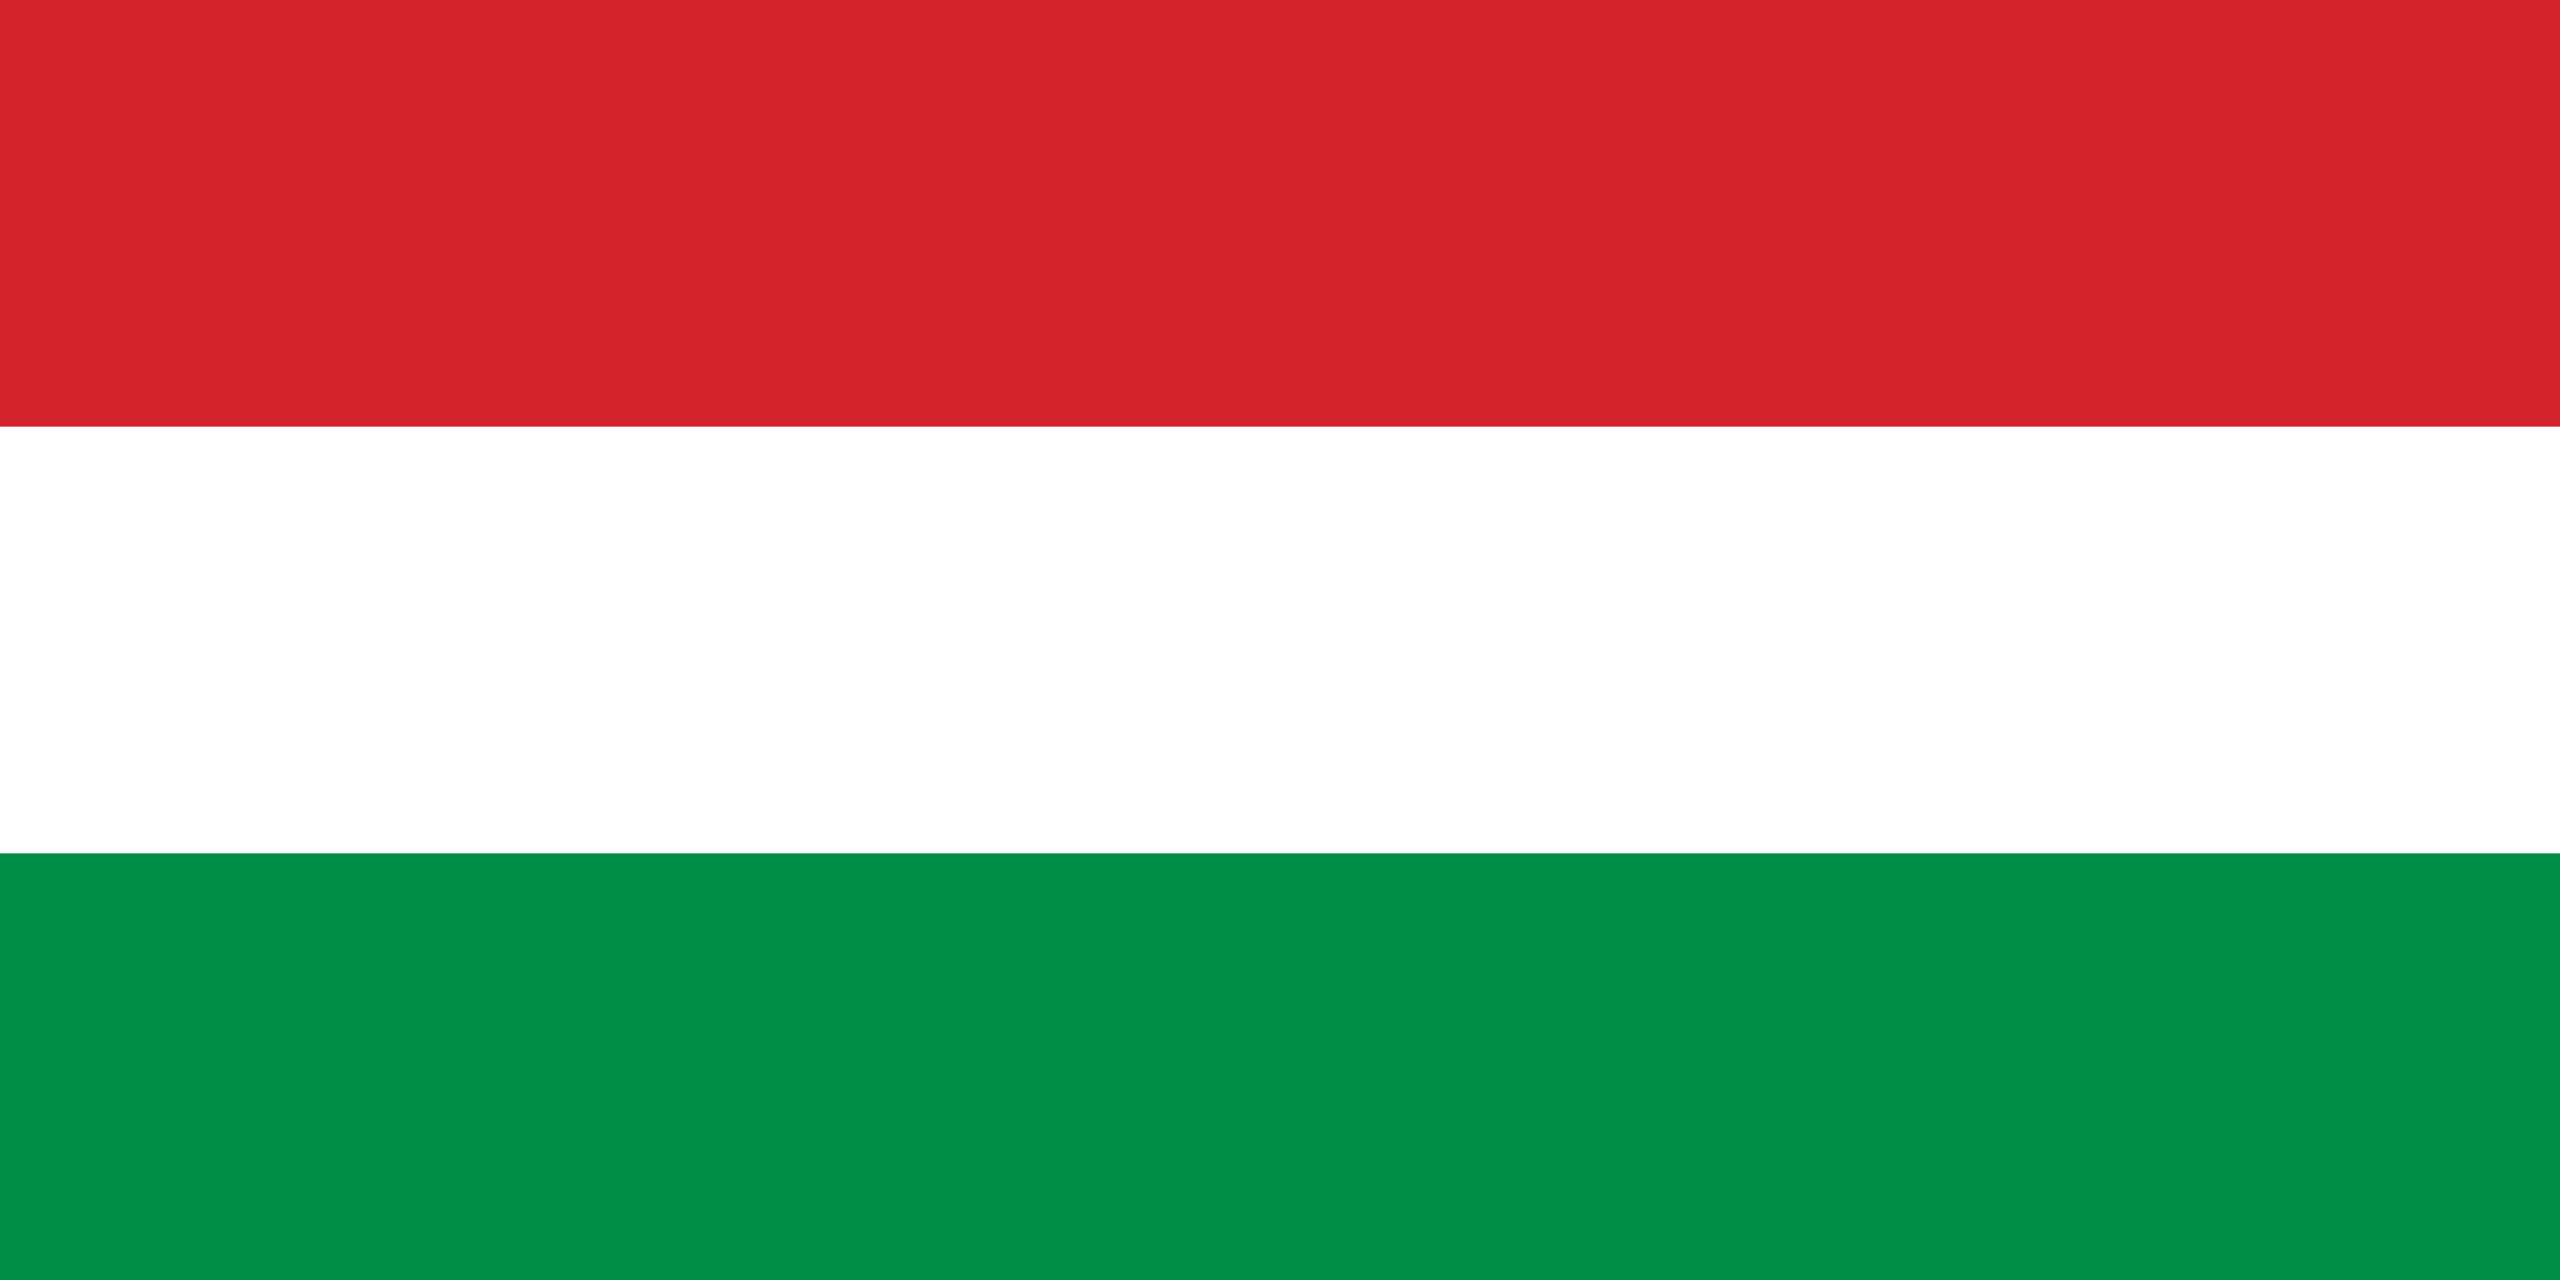 Hungarian Flags National Flag Of Hungary For Sale Online